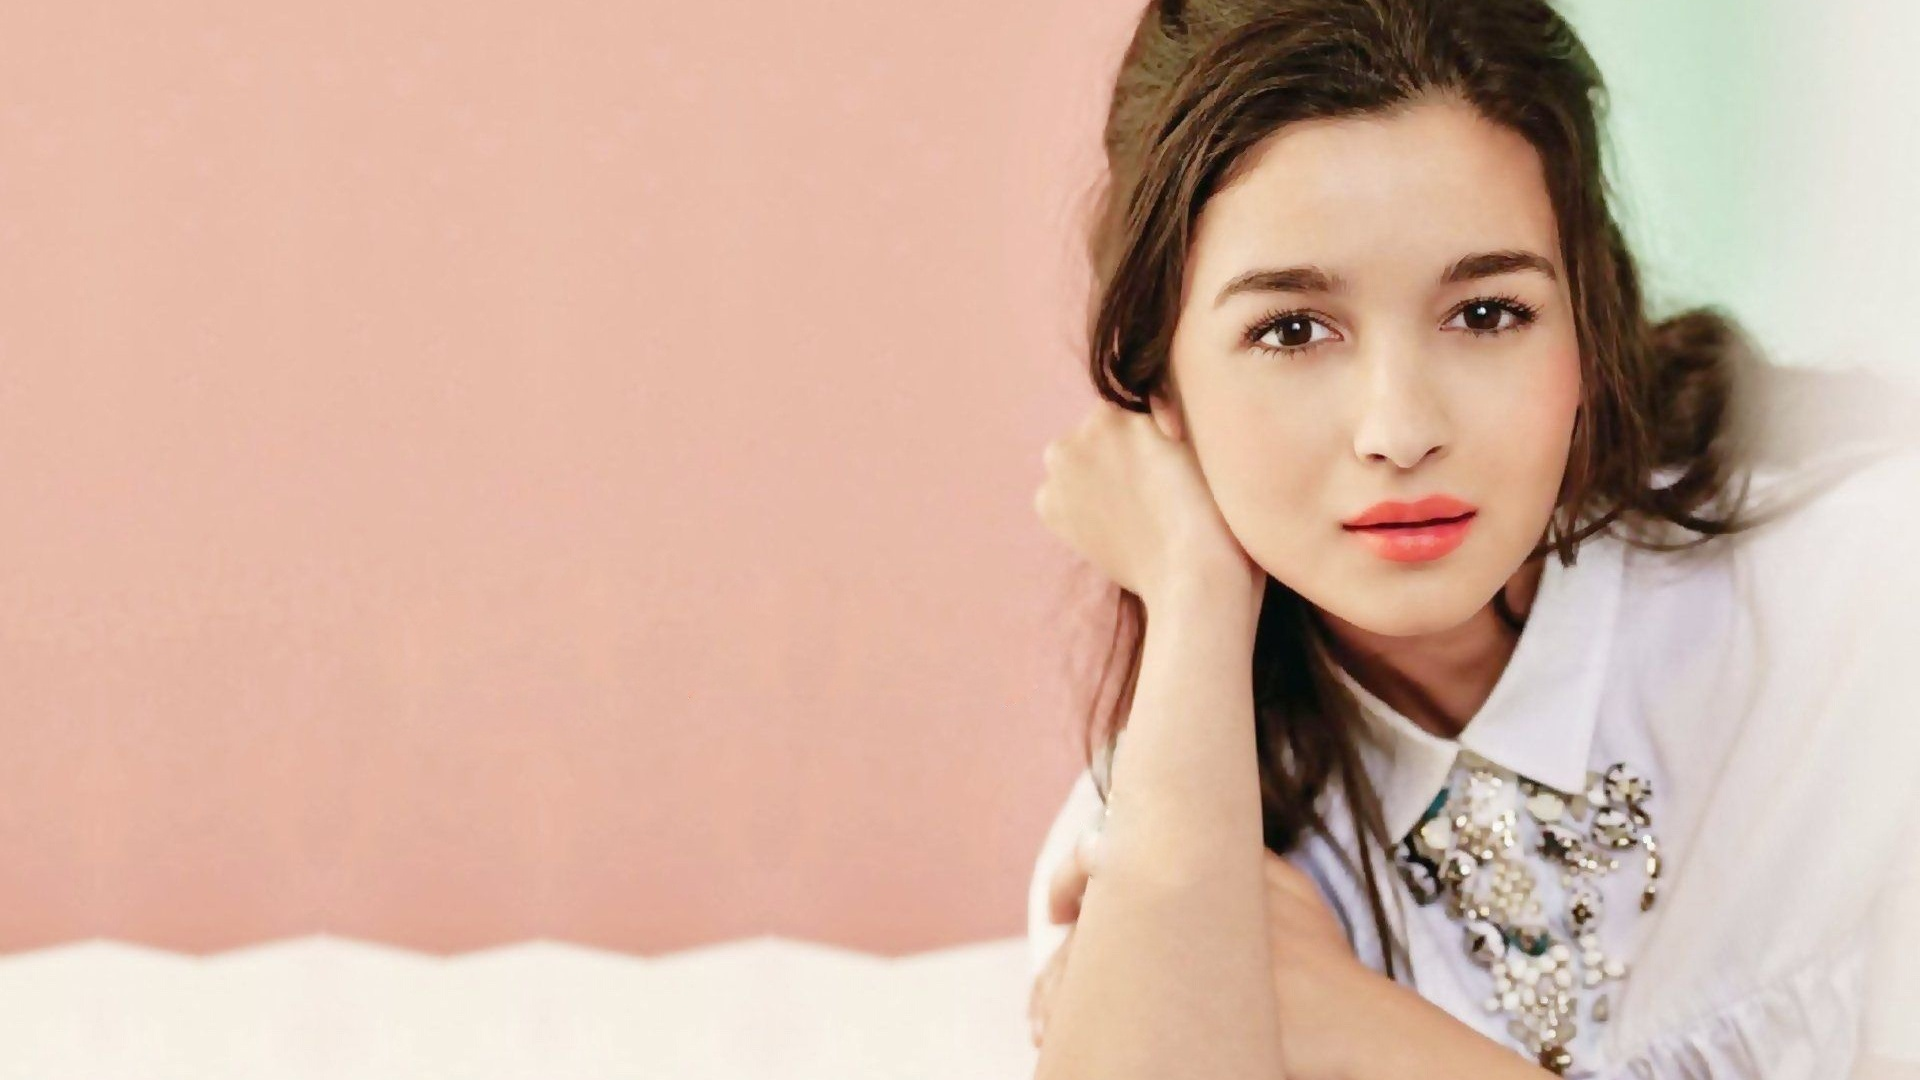 alia bhatt hd wallpaper - wallpaper, high definition, high quality